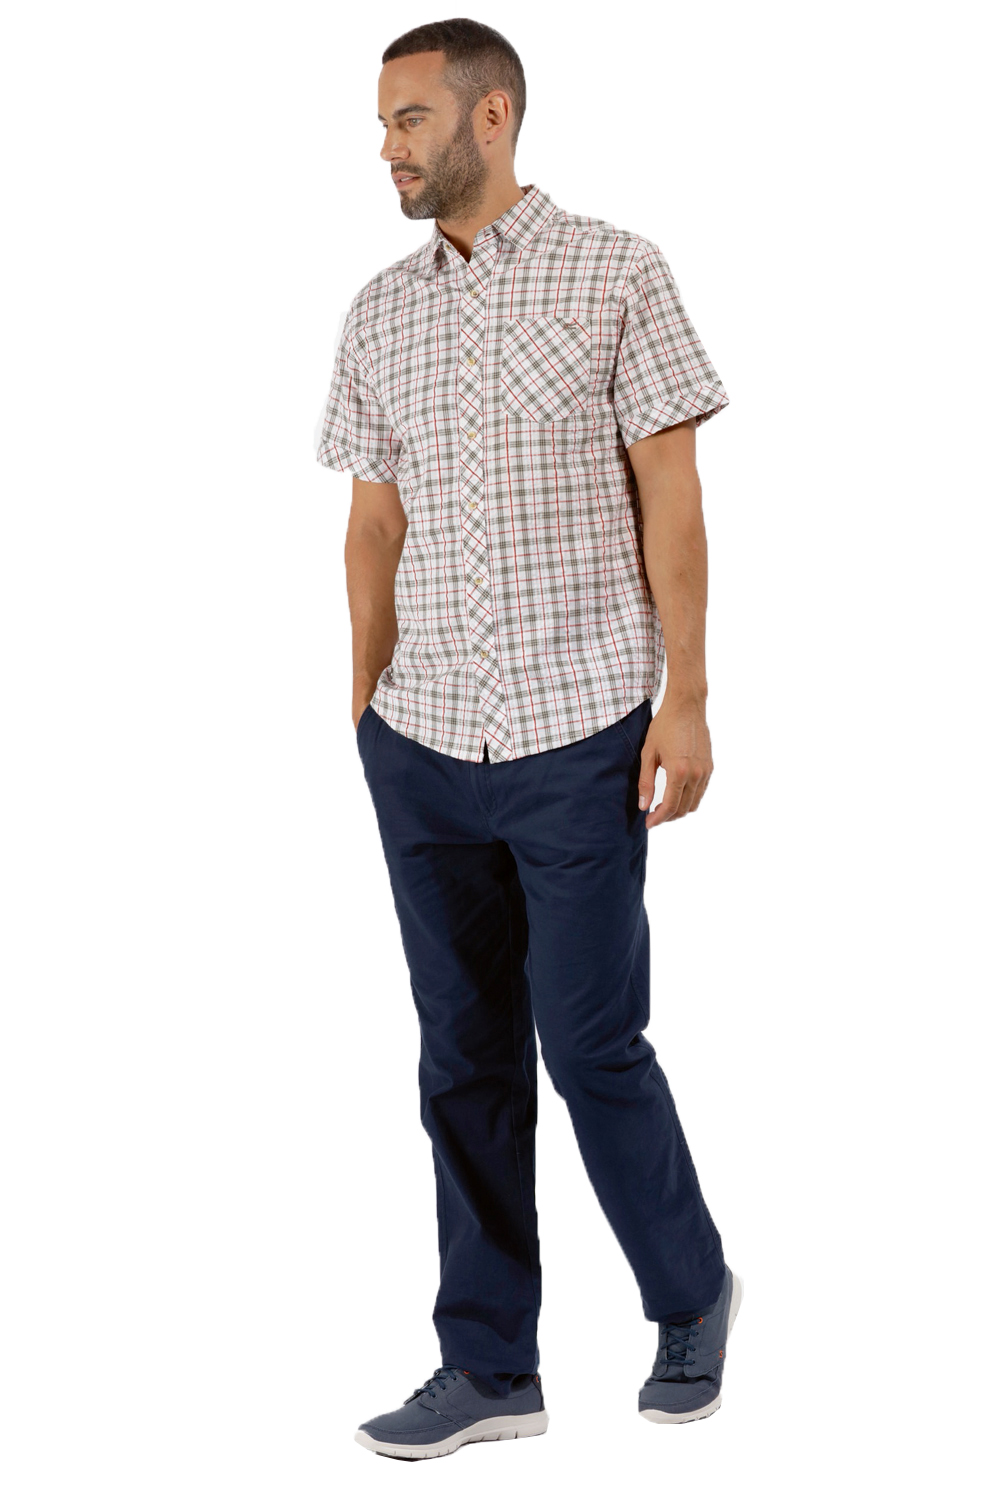 Regatta-Mens-Deakin-II-Coolweave-Cotton-Short-Sleeved-Summer-Check-Shirt-RRP-50 thumbnail 16